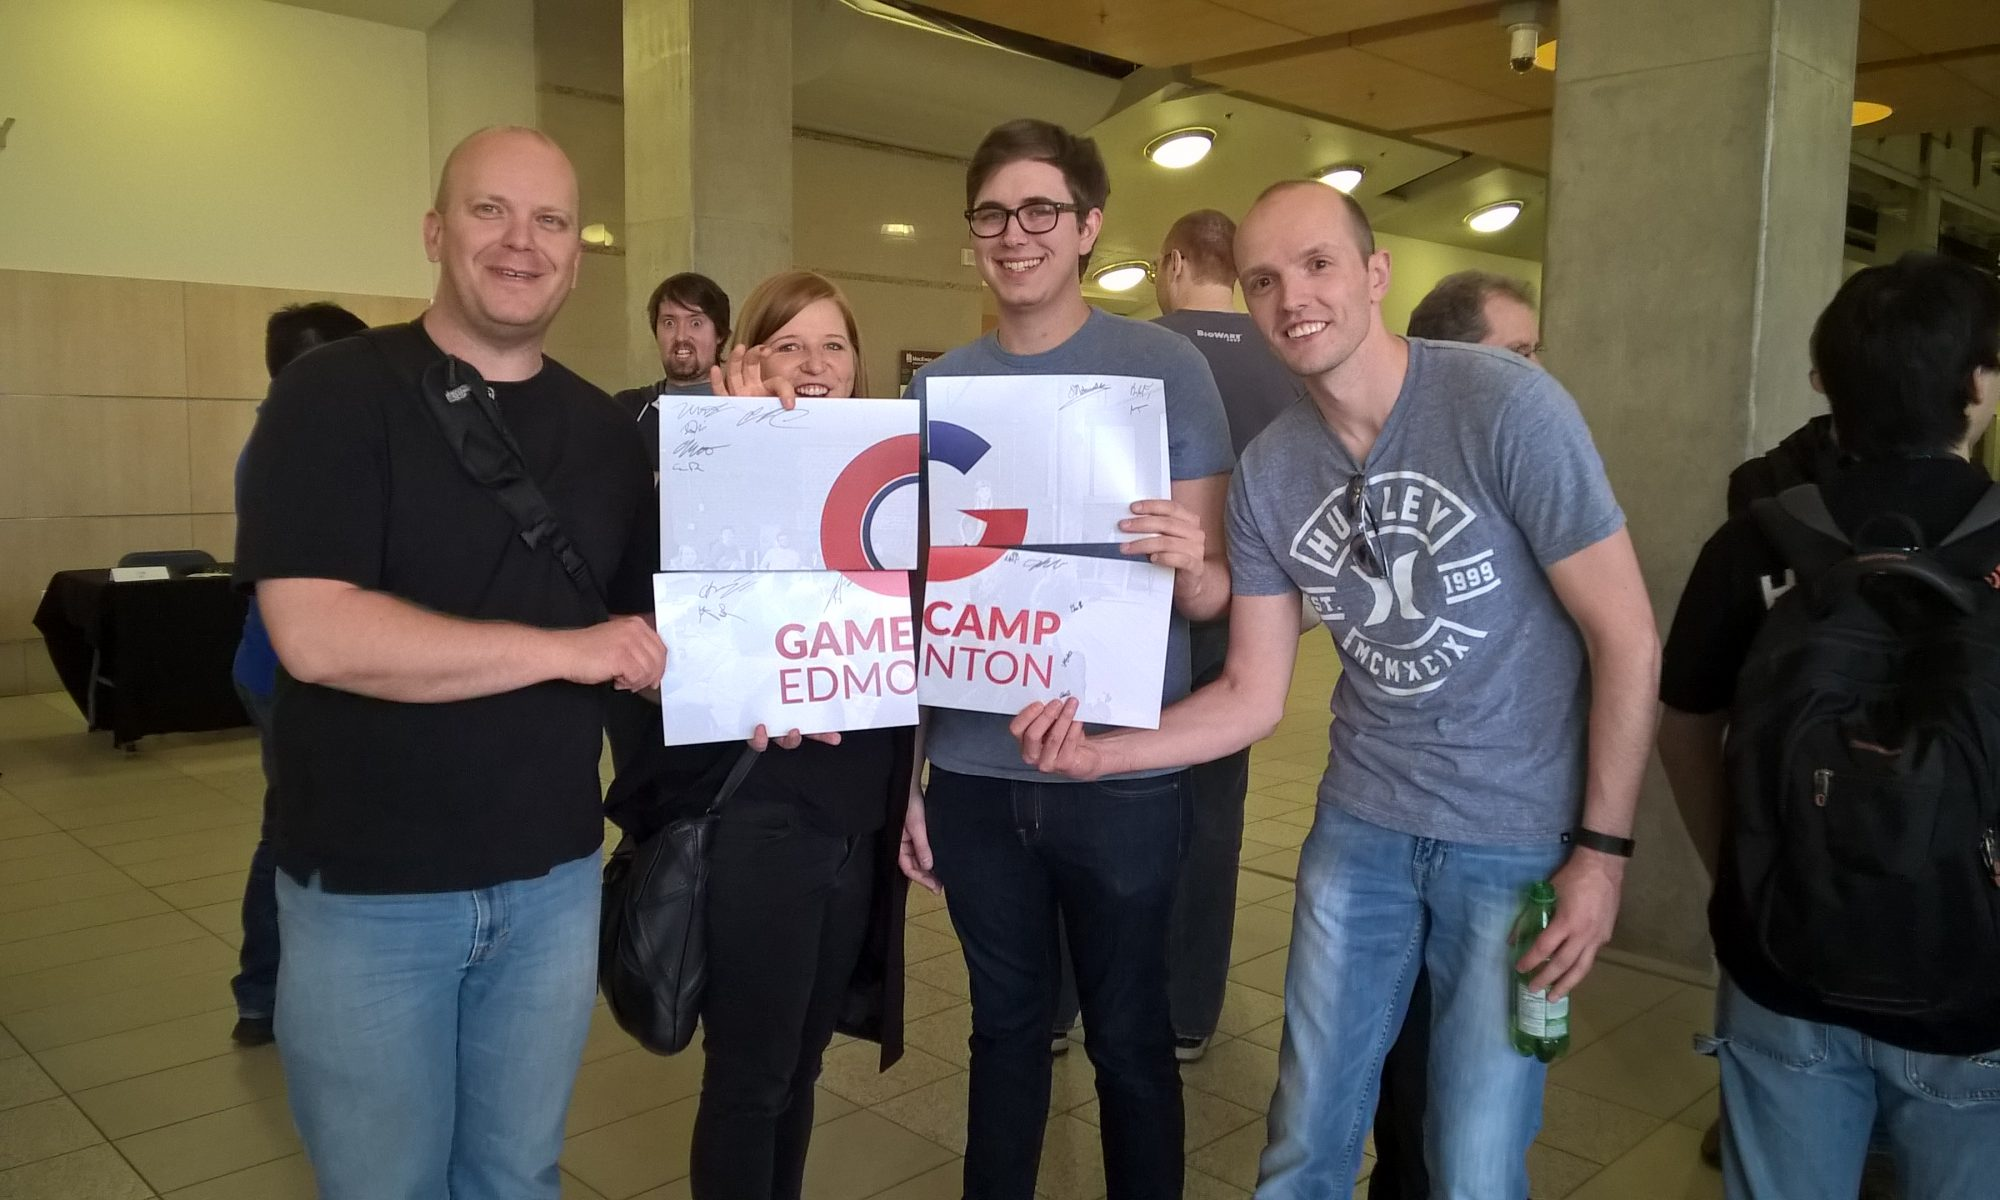 GameCamp at GDX